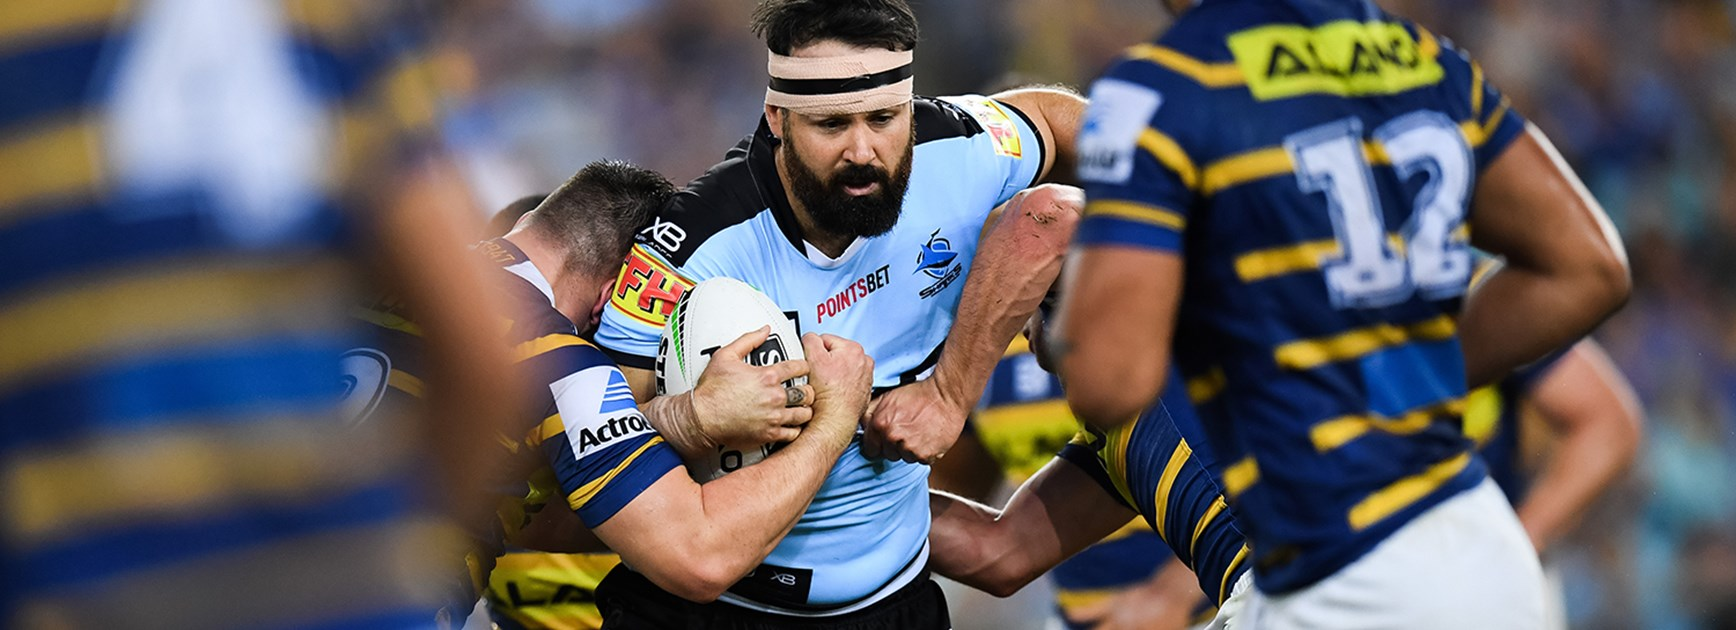 Battered Sharks brave in Eels loss